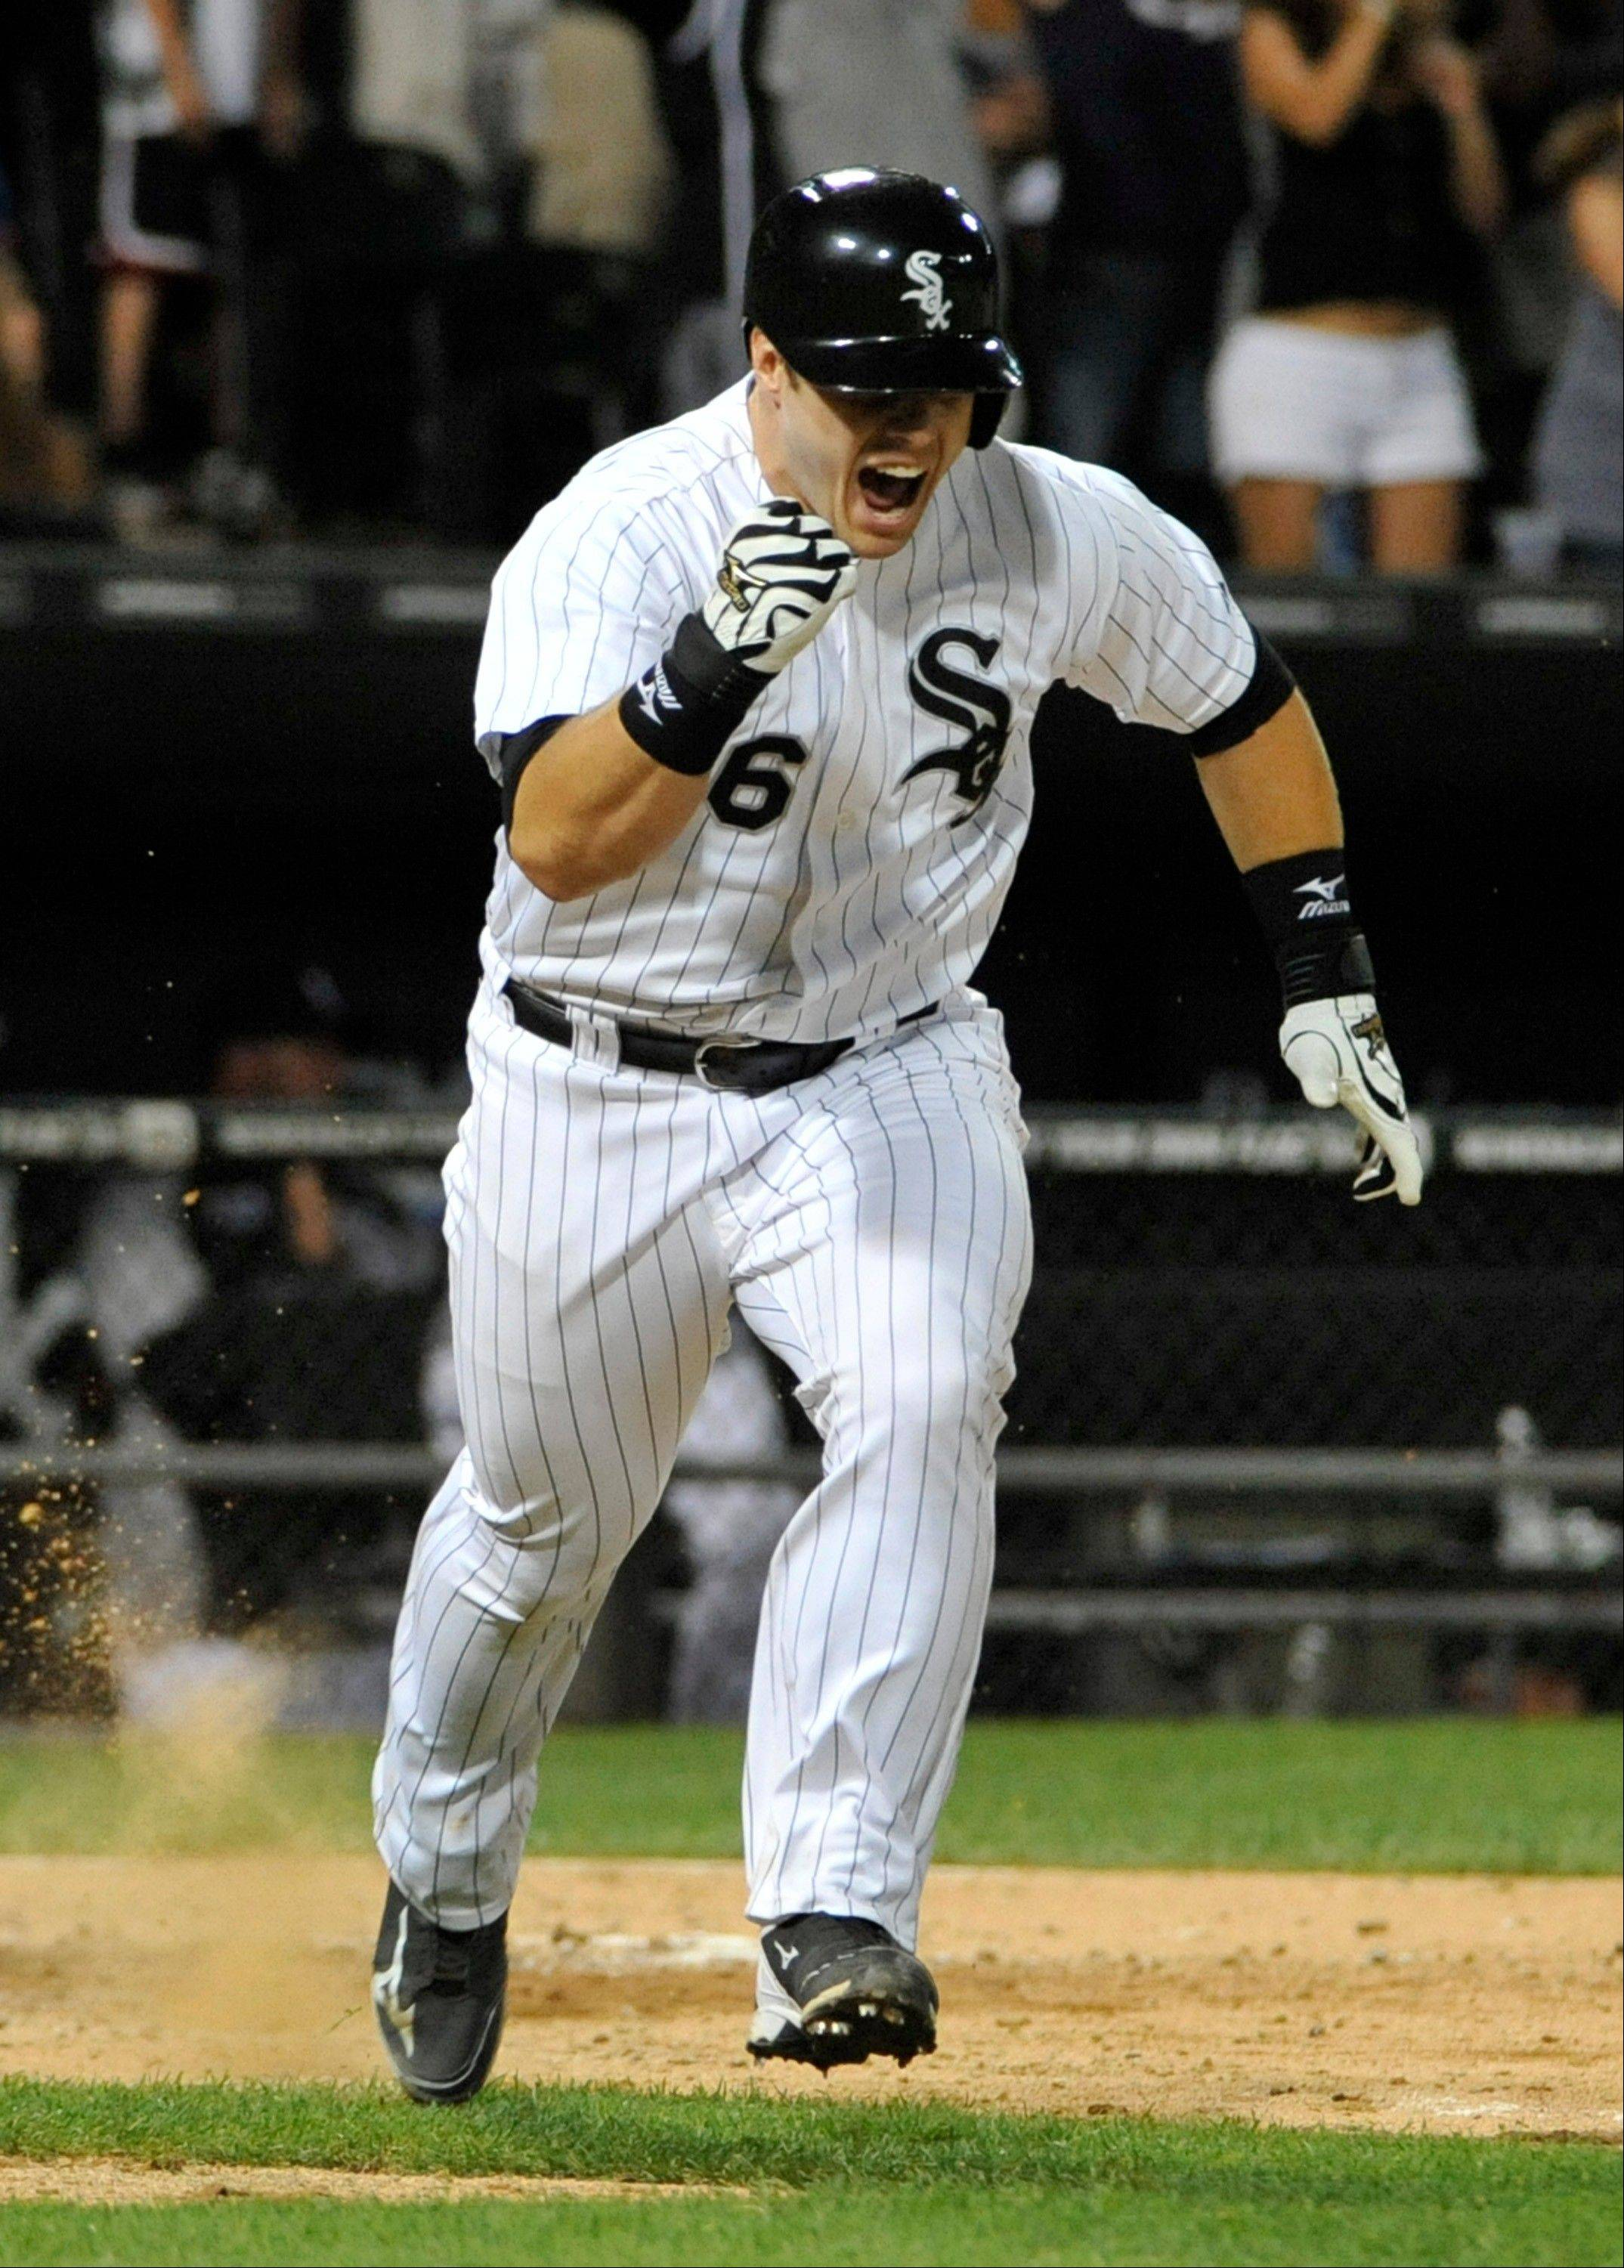 The White Sox' Josh Phegley reacts to hitting the game-winning hit against the Texas Rangers during the ninth inning Saturday, Aug. 24, 2013, in Chicago.